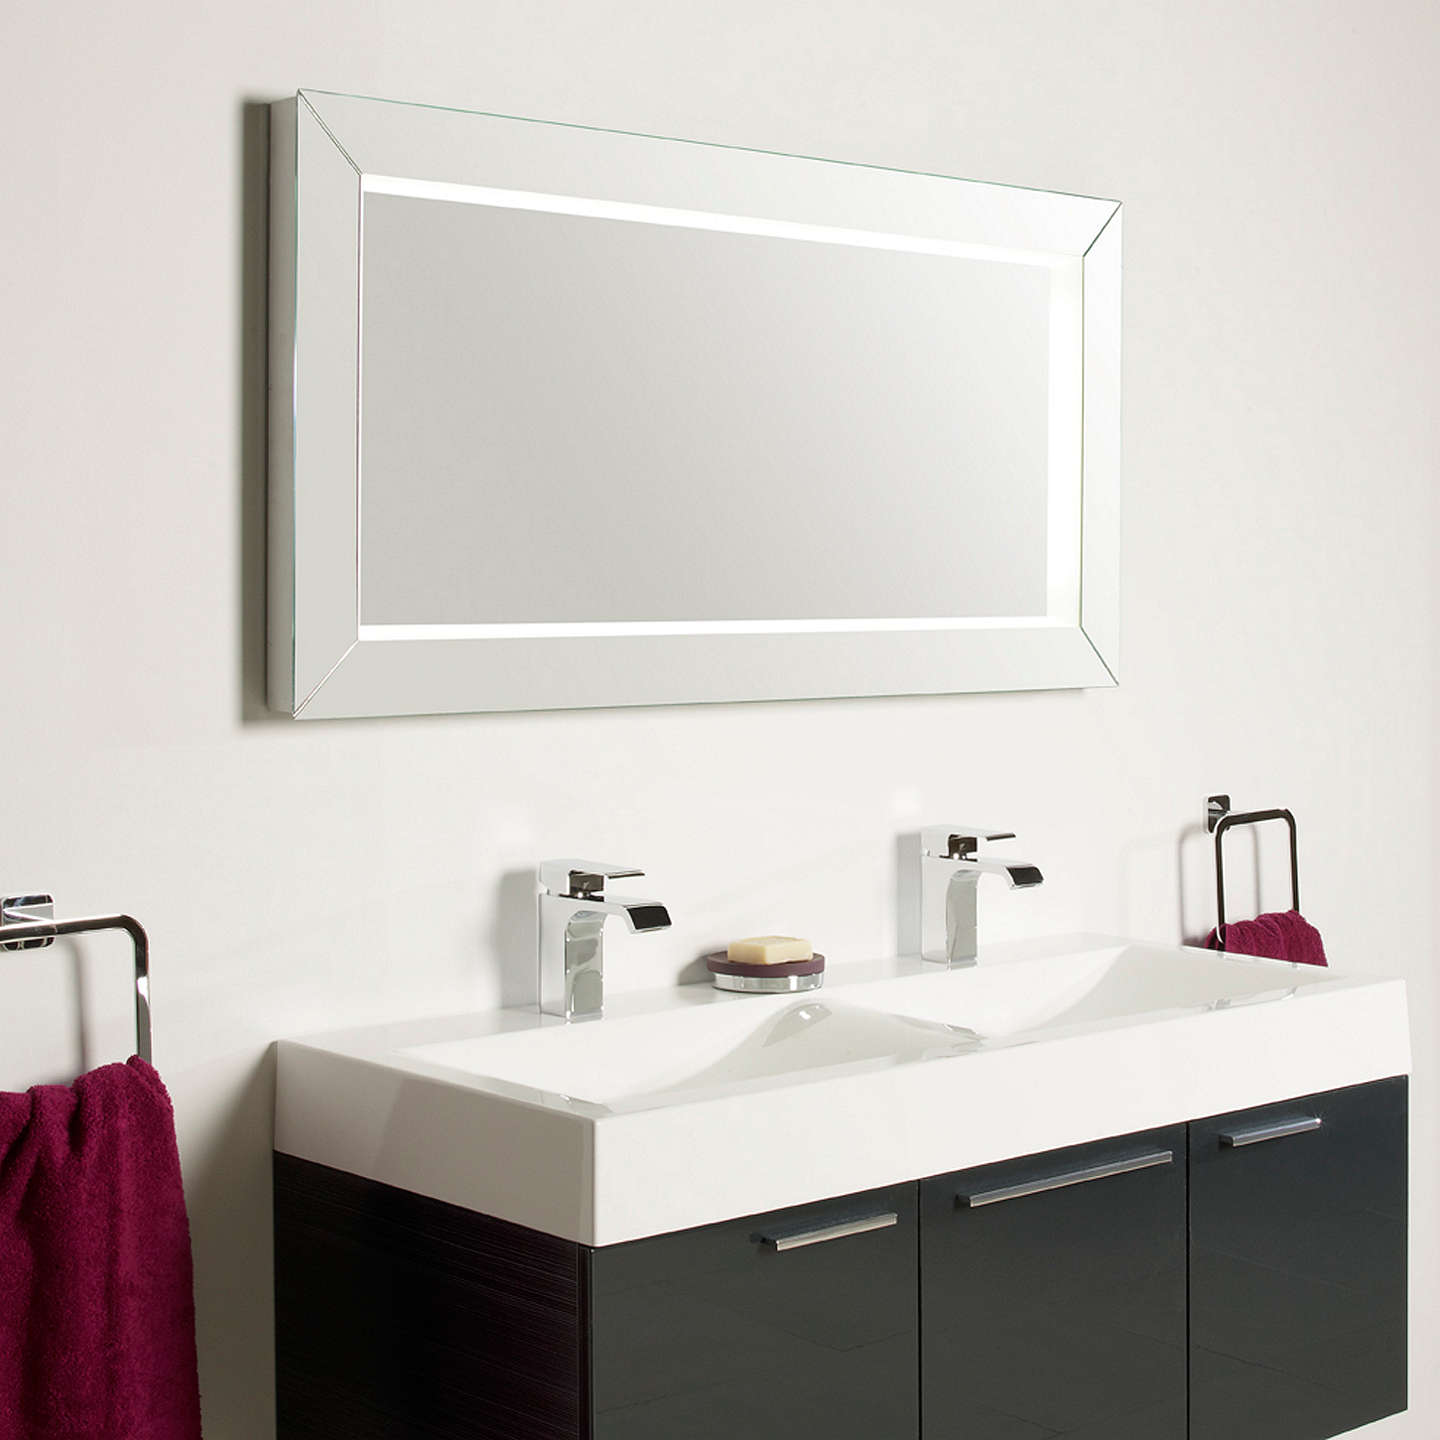 roper rhodes affinity illuminated bathroom mirror at john. Black Bedroom Furniture Sets. Home Design Ideas